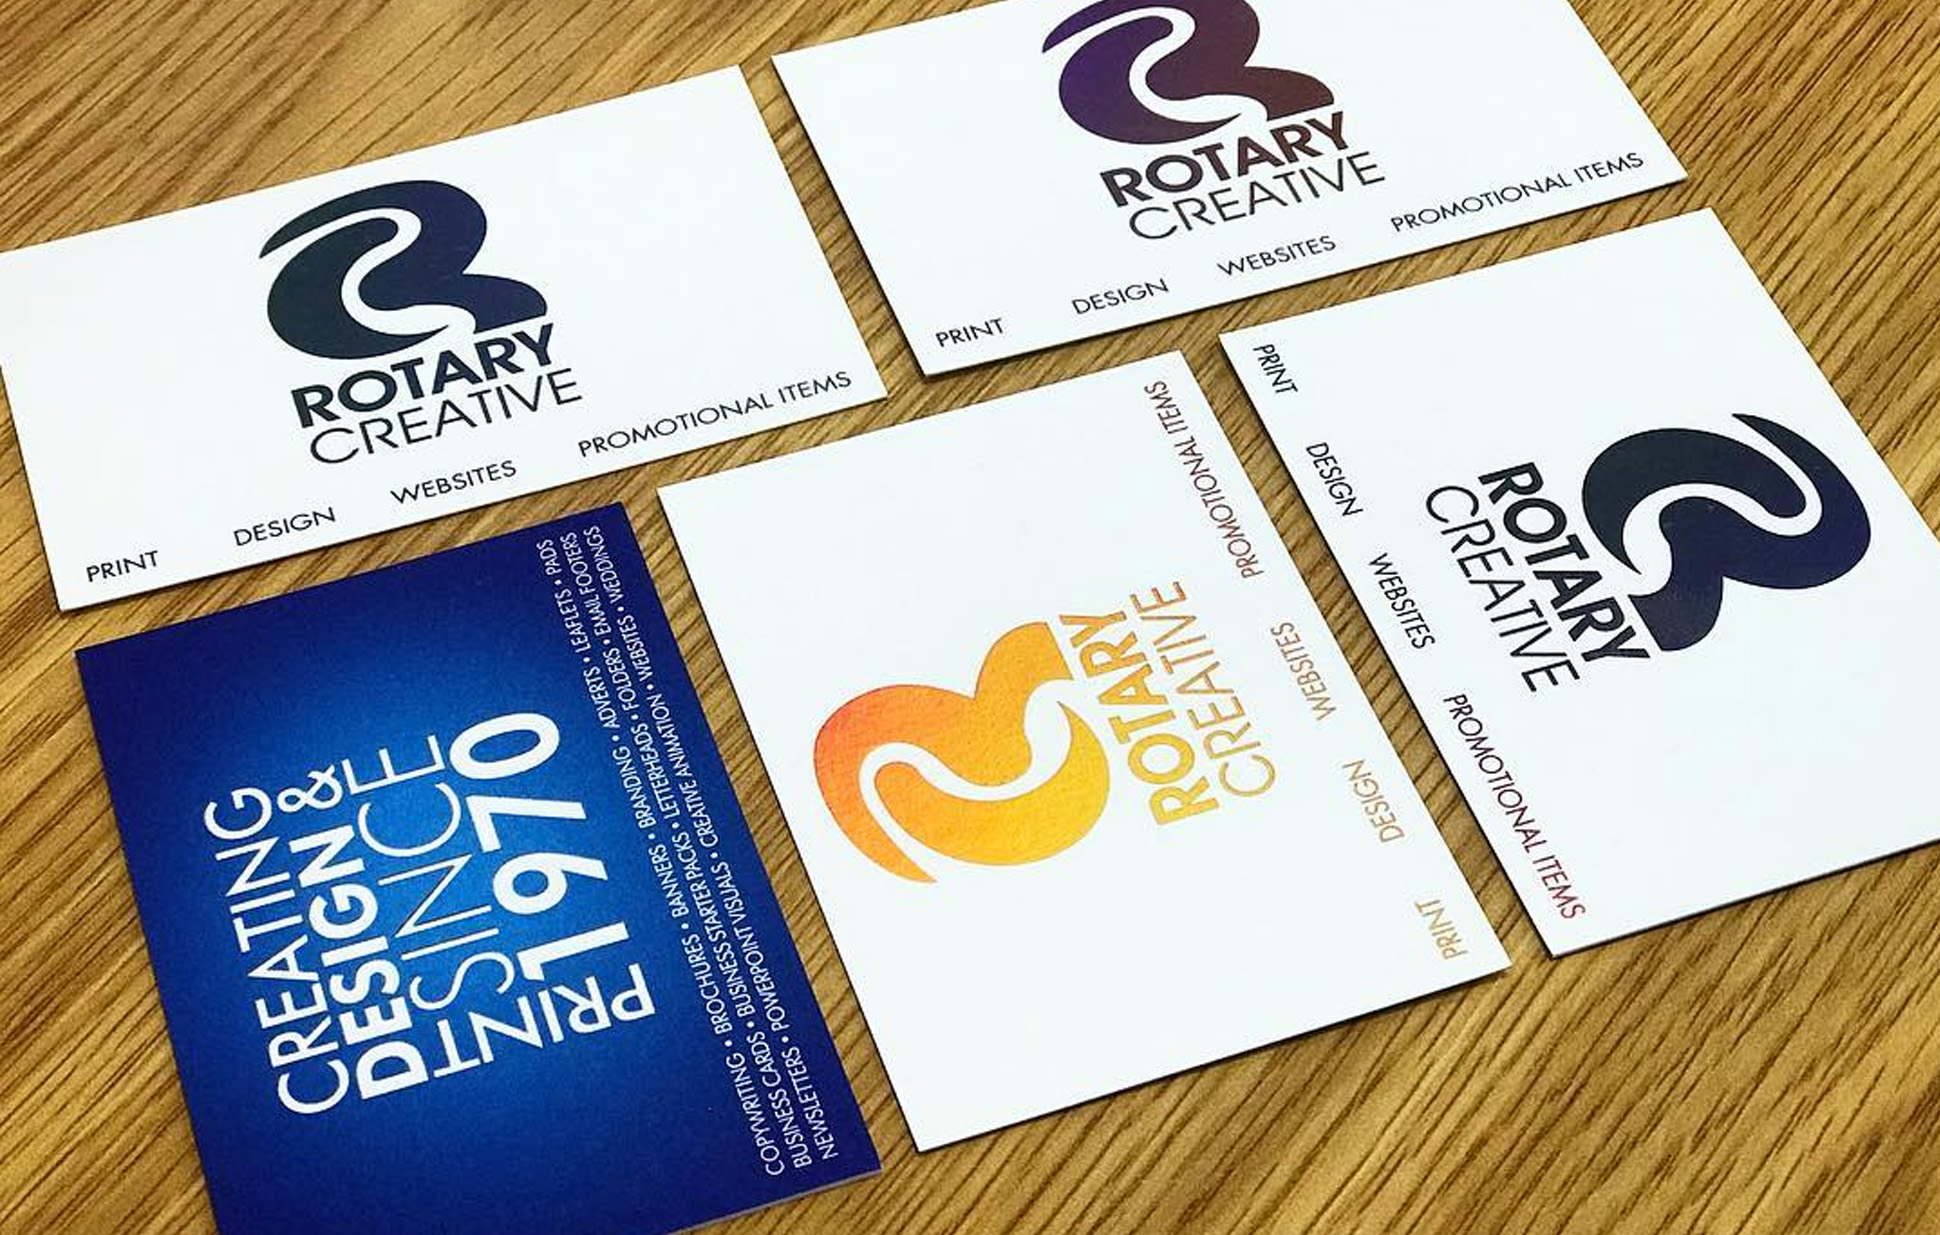 Print rotary creative group stourport based lithographic finishing reheart Choice Image